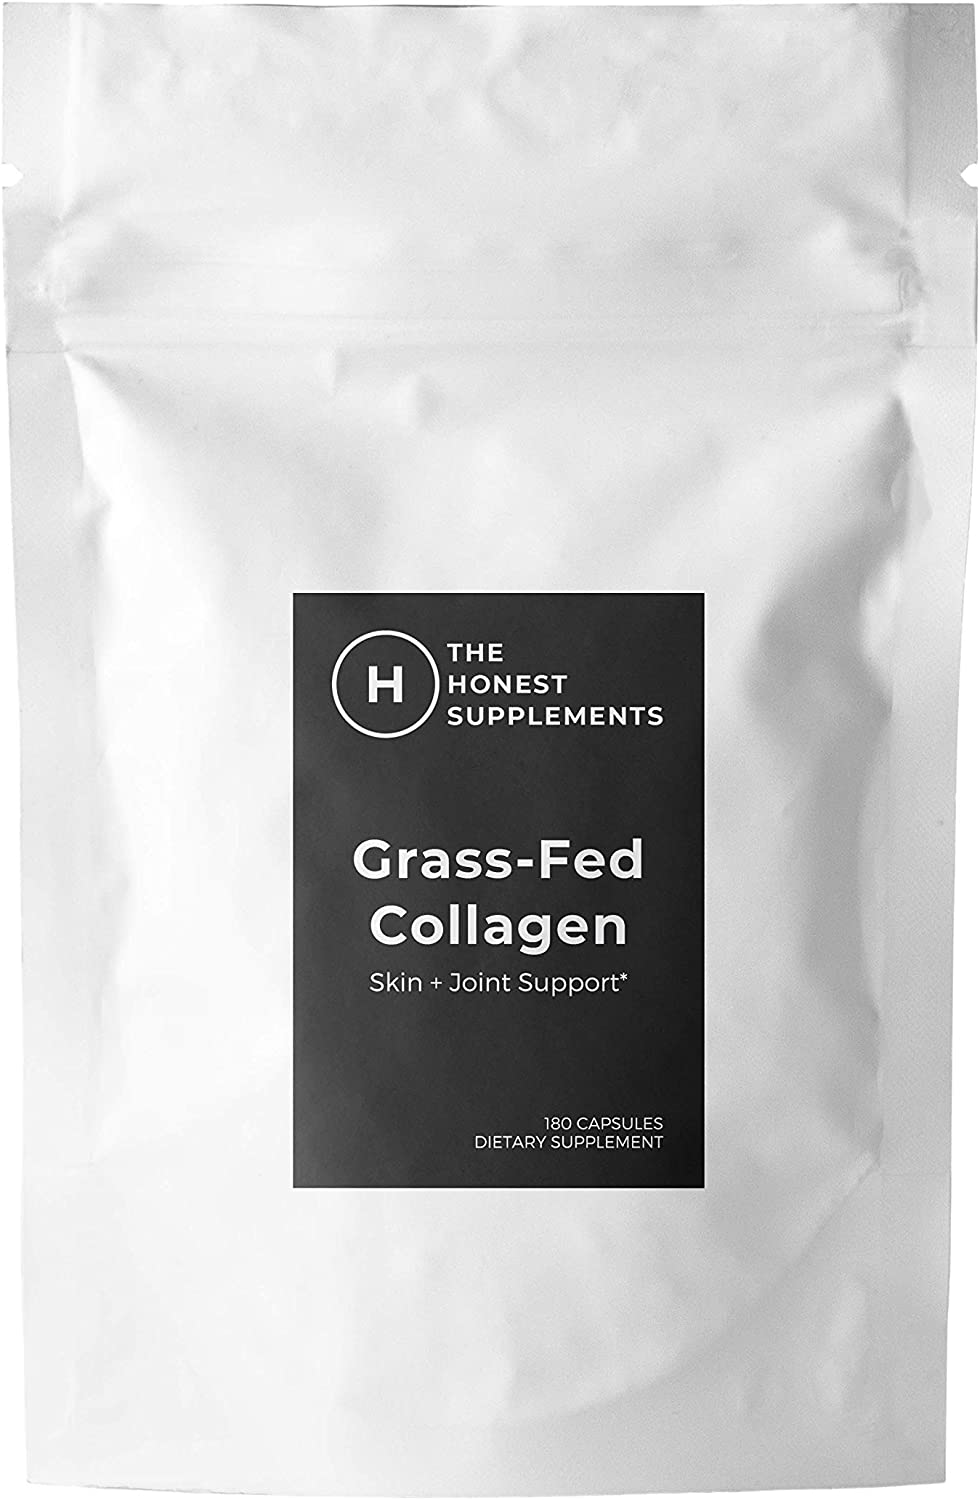 Grass-Fed Pasture Raised Collagen, Non-GMO, Kosher, All Natural & Gluten Free, Freeze-Dried, Non-Defatted, Hormone Free, Unflavored, 90 Grams